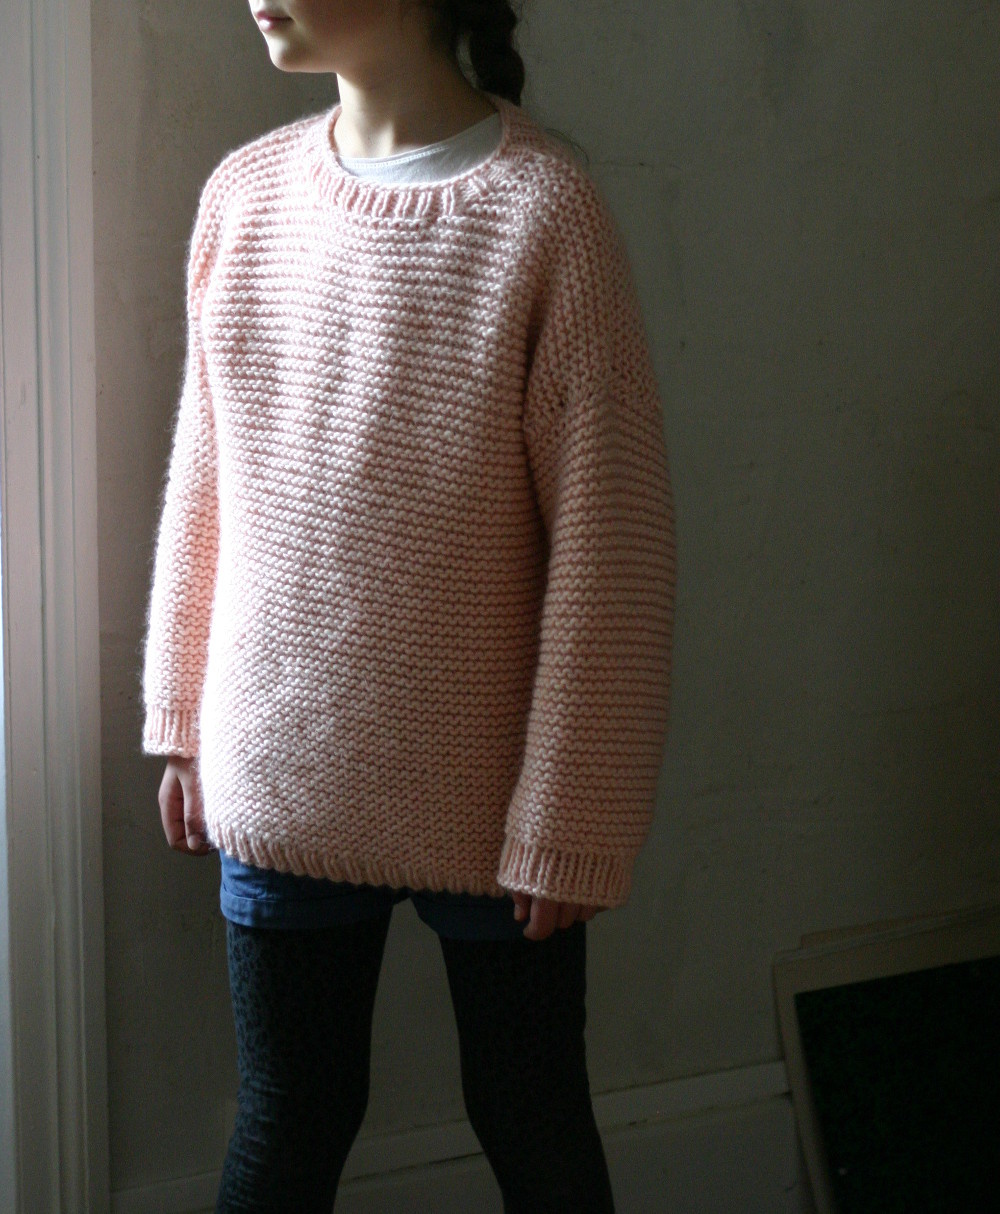 Tricoter son pull